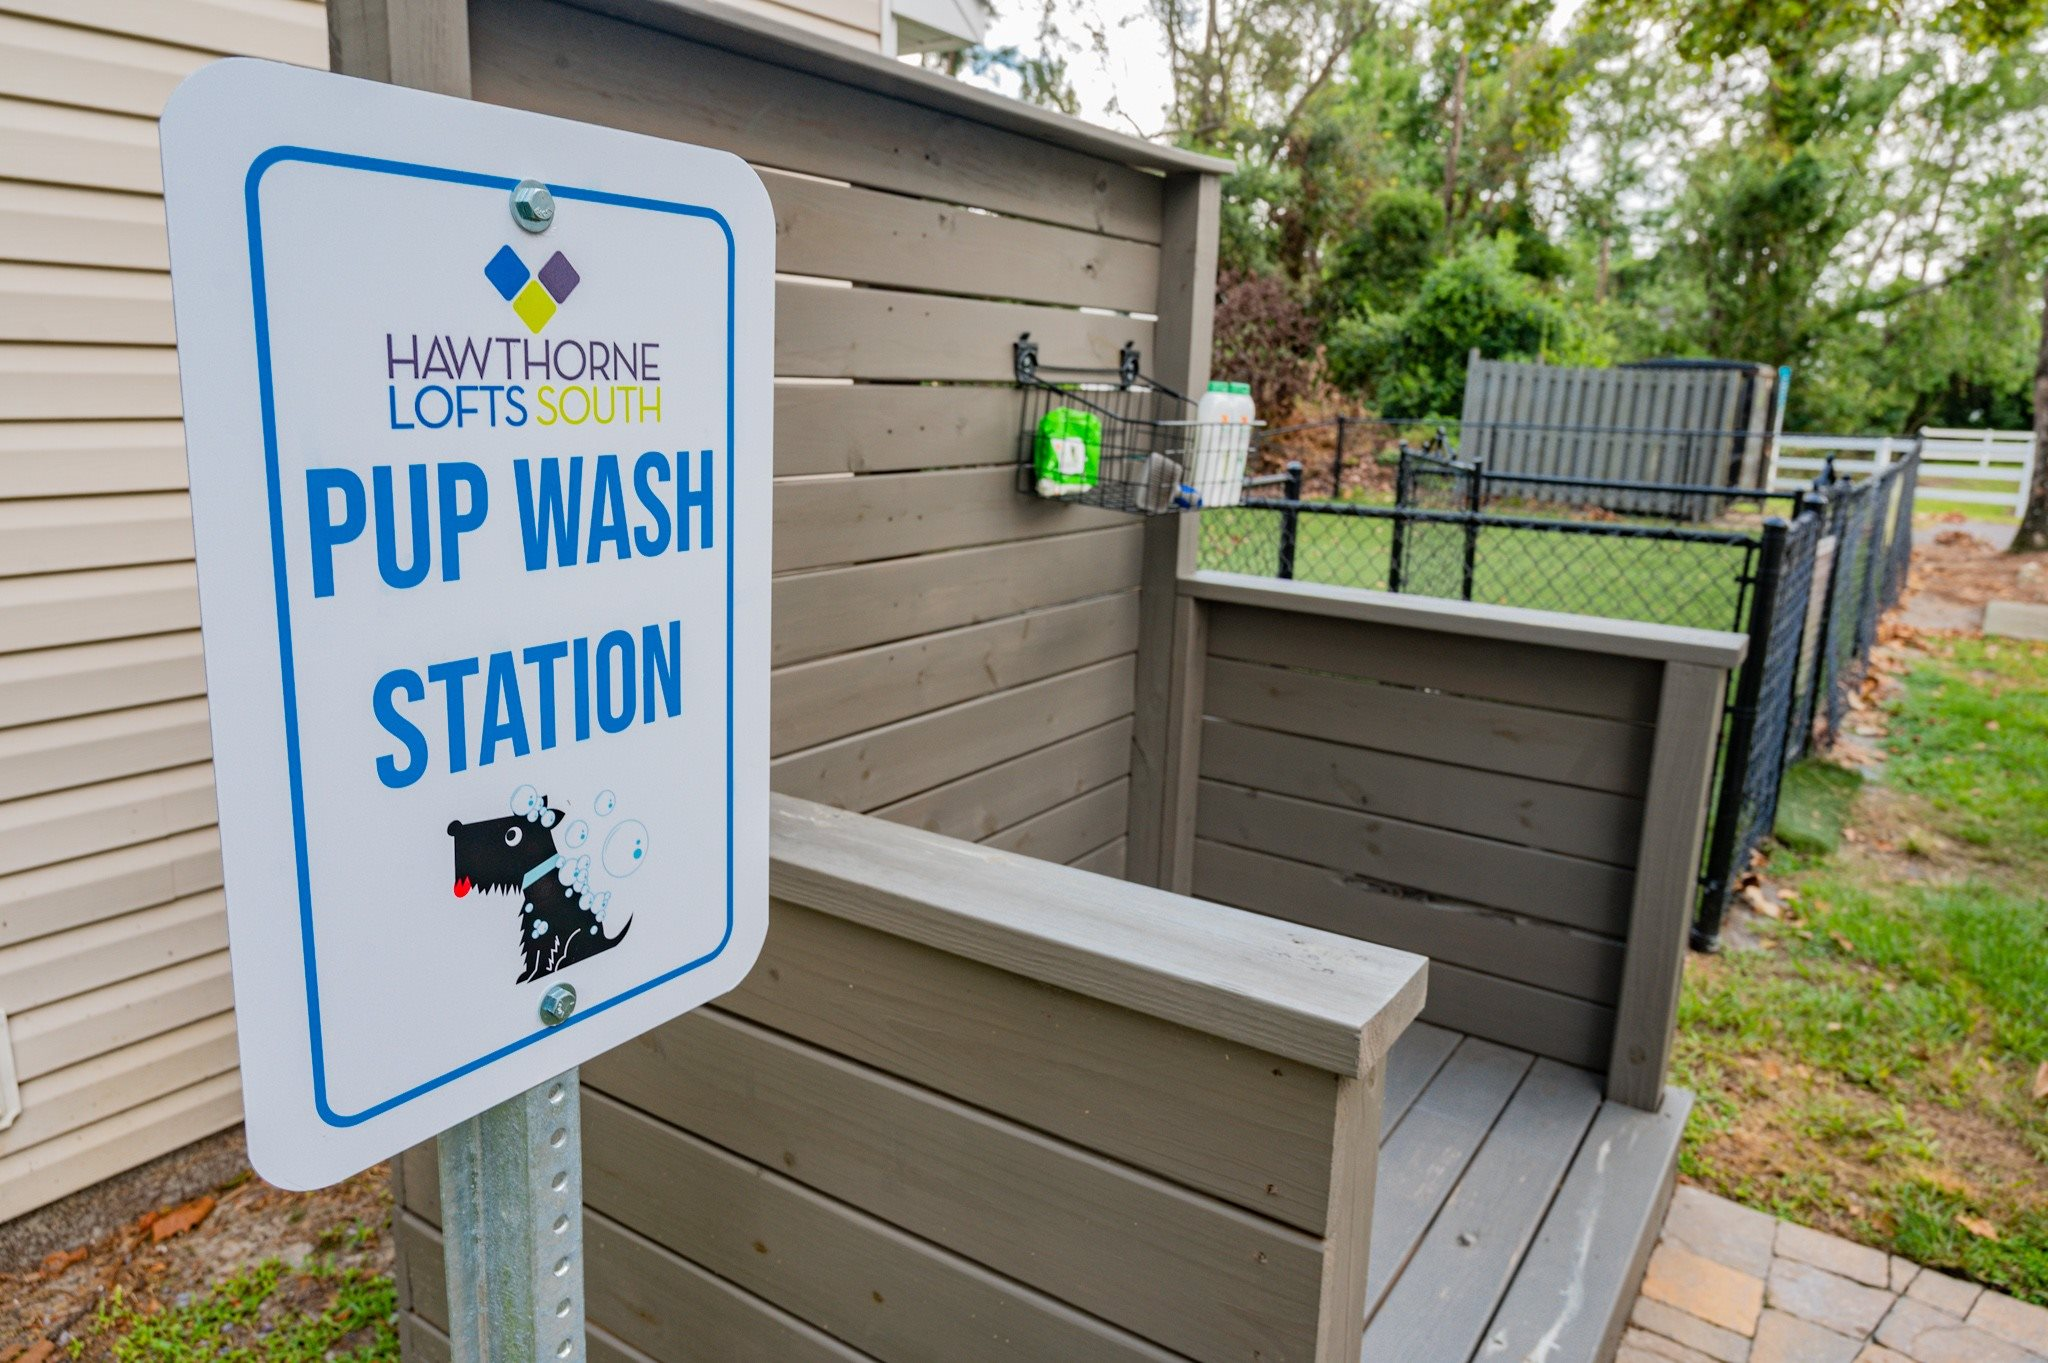 Pup Wash at Hawthorne Lofts South in Wilmington, NC